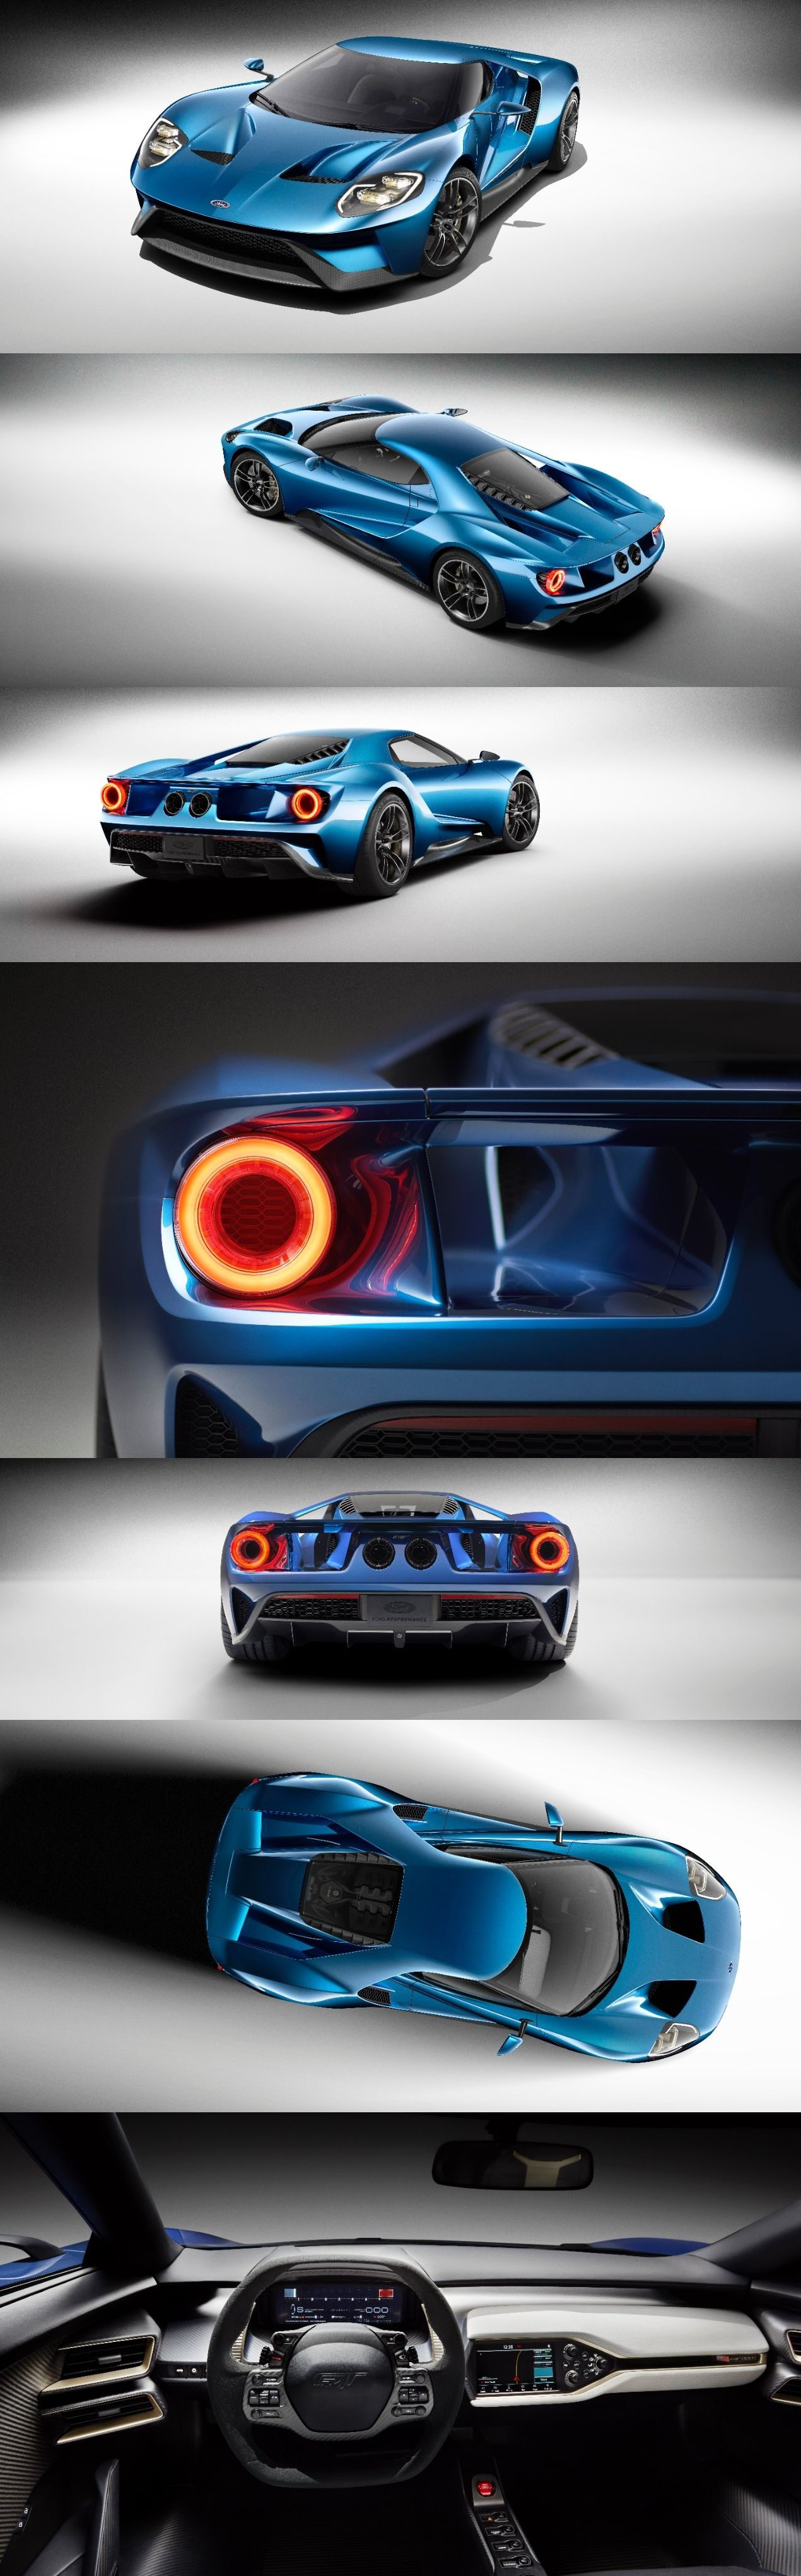 Cool cars 2016 ford mustang gt spy shoot pictures car interior - 25 Best Ford Gt 2016 Ideas On Pinterest Ford Gt40 2016 Ford Gt 2017 And Ford